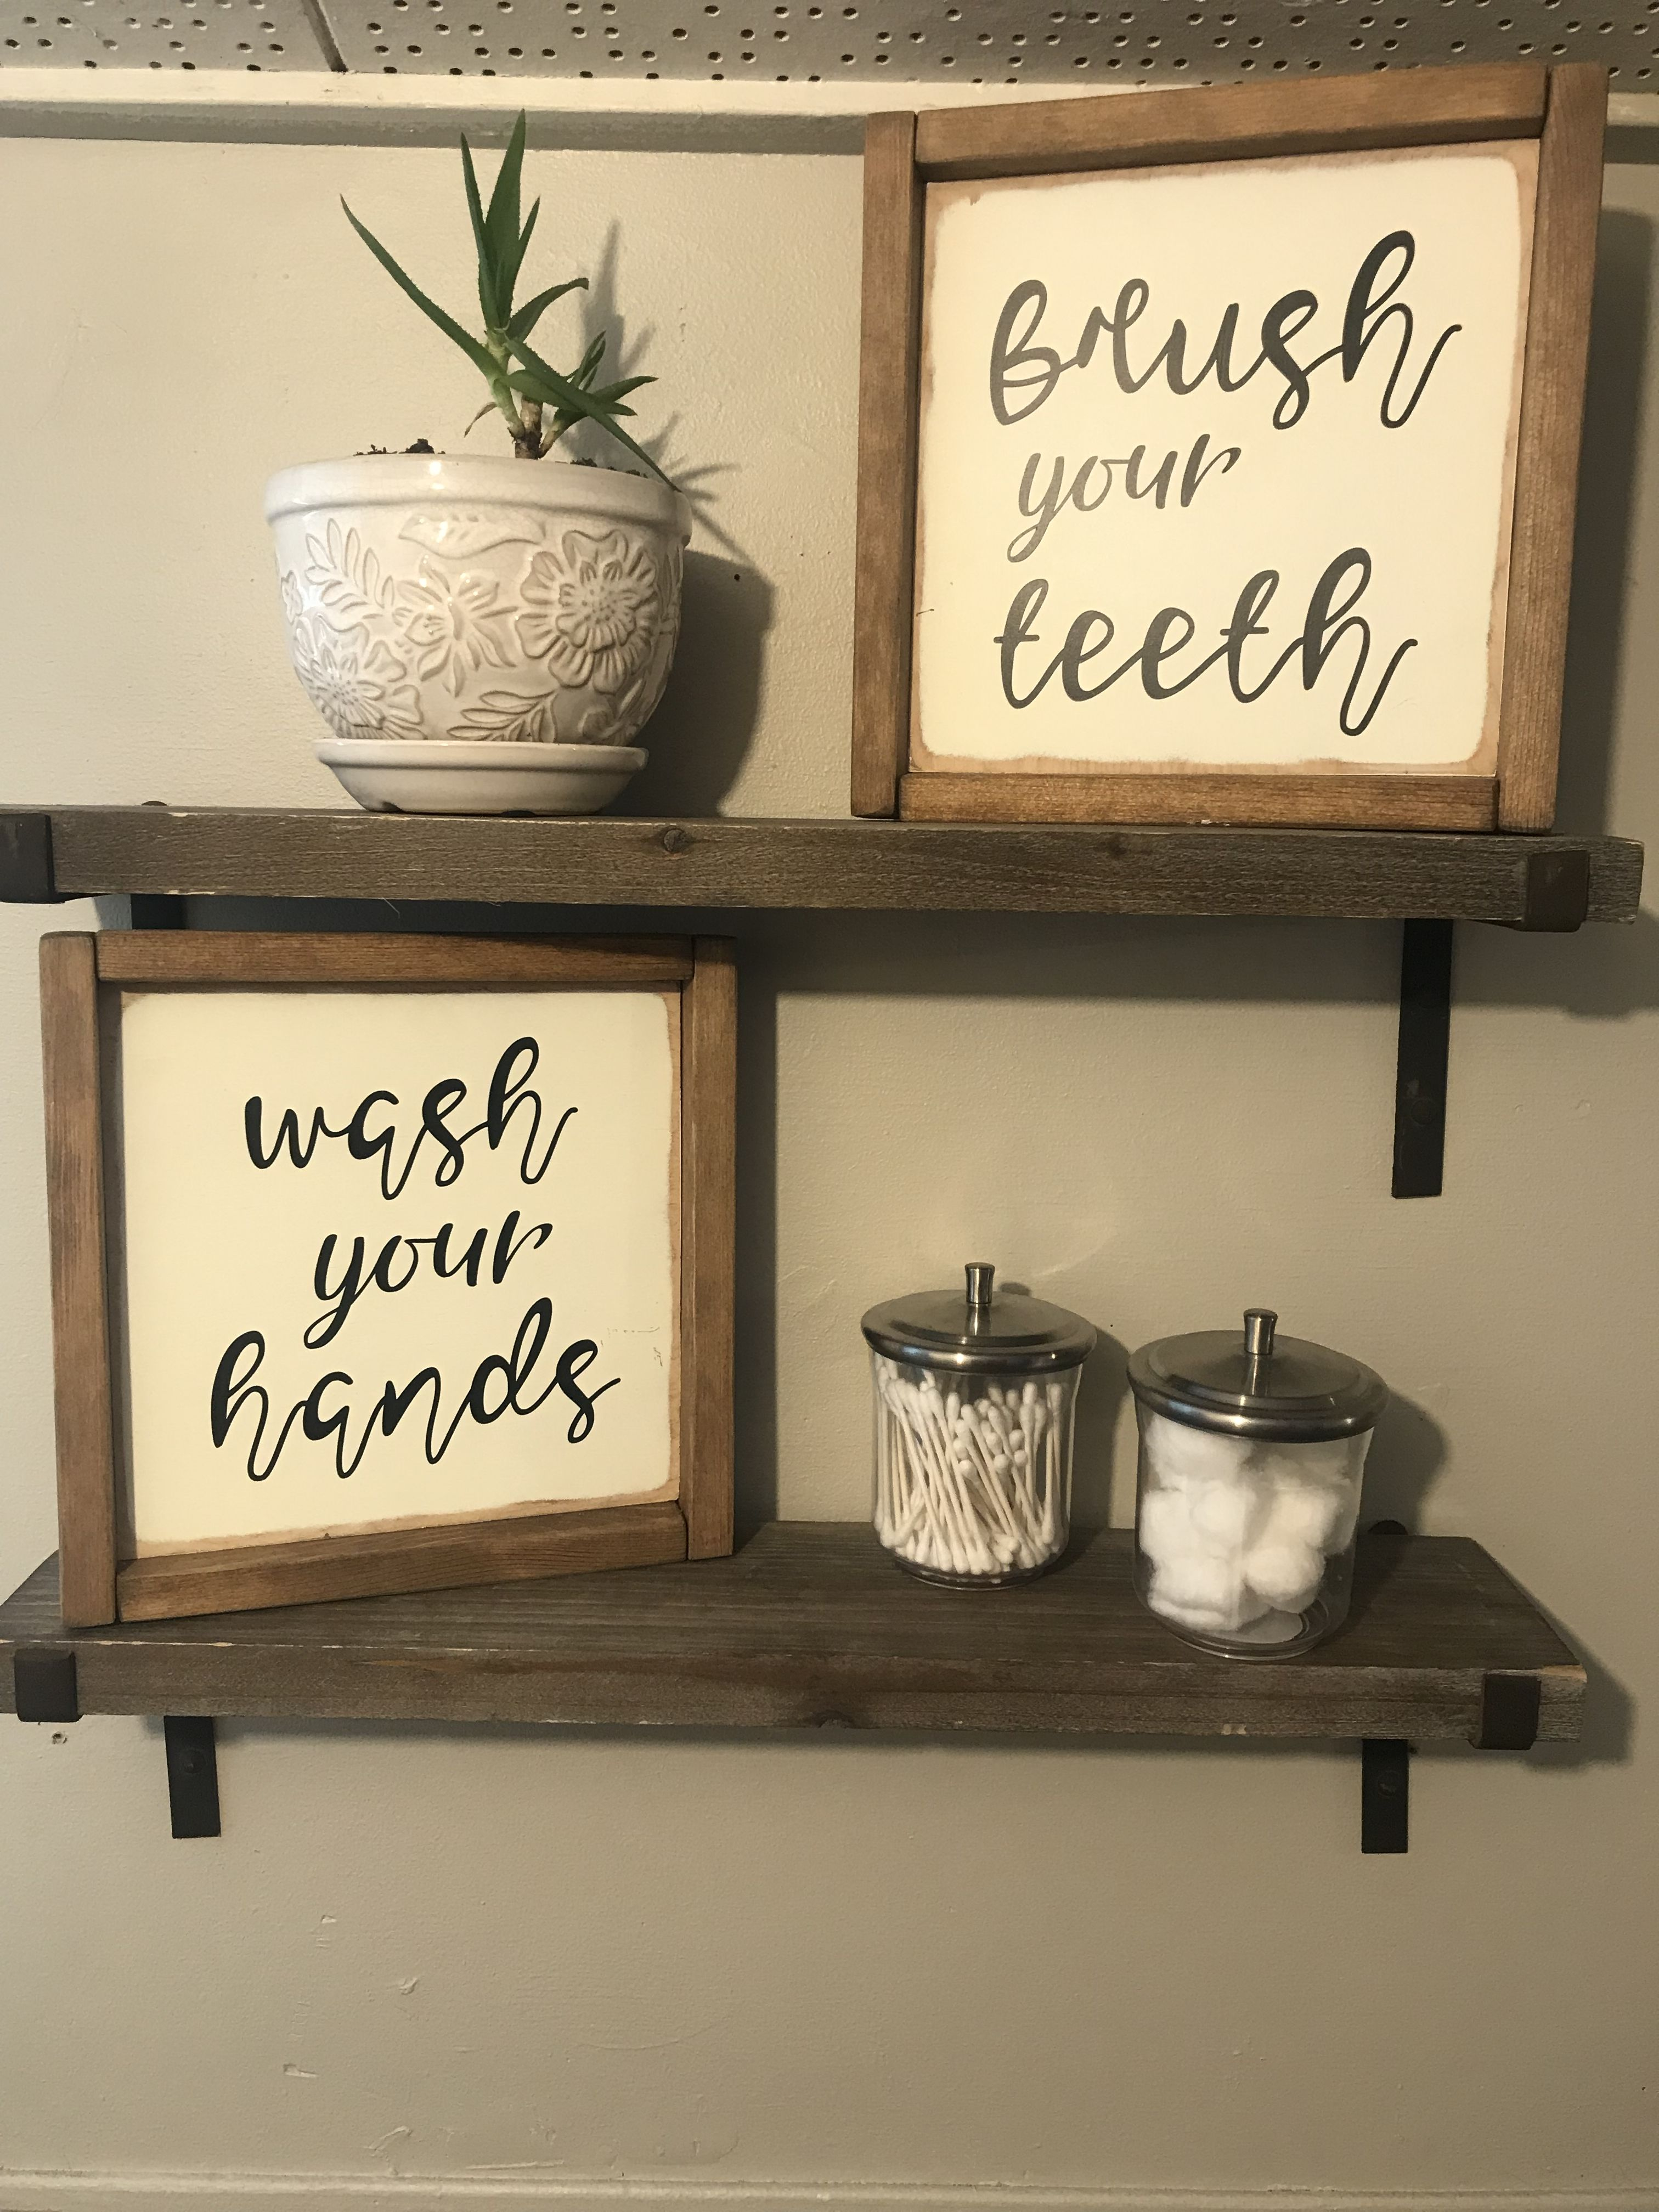 Shelves from Hobby Lobby Homemade signs Jars and planter